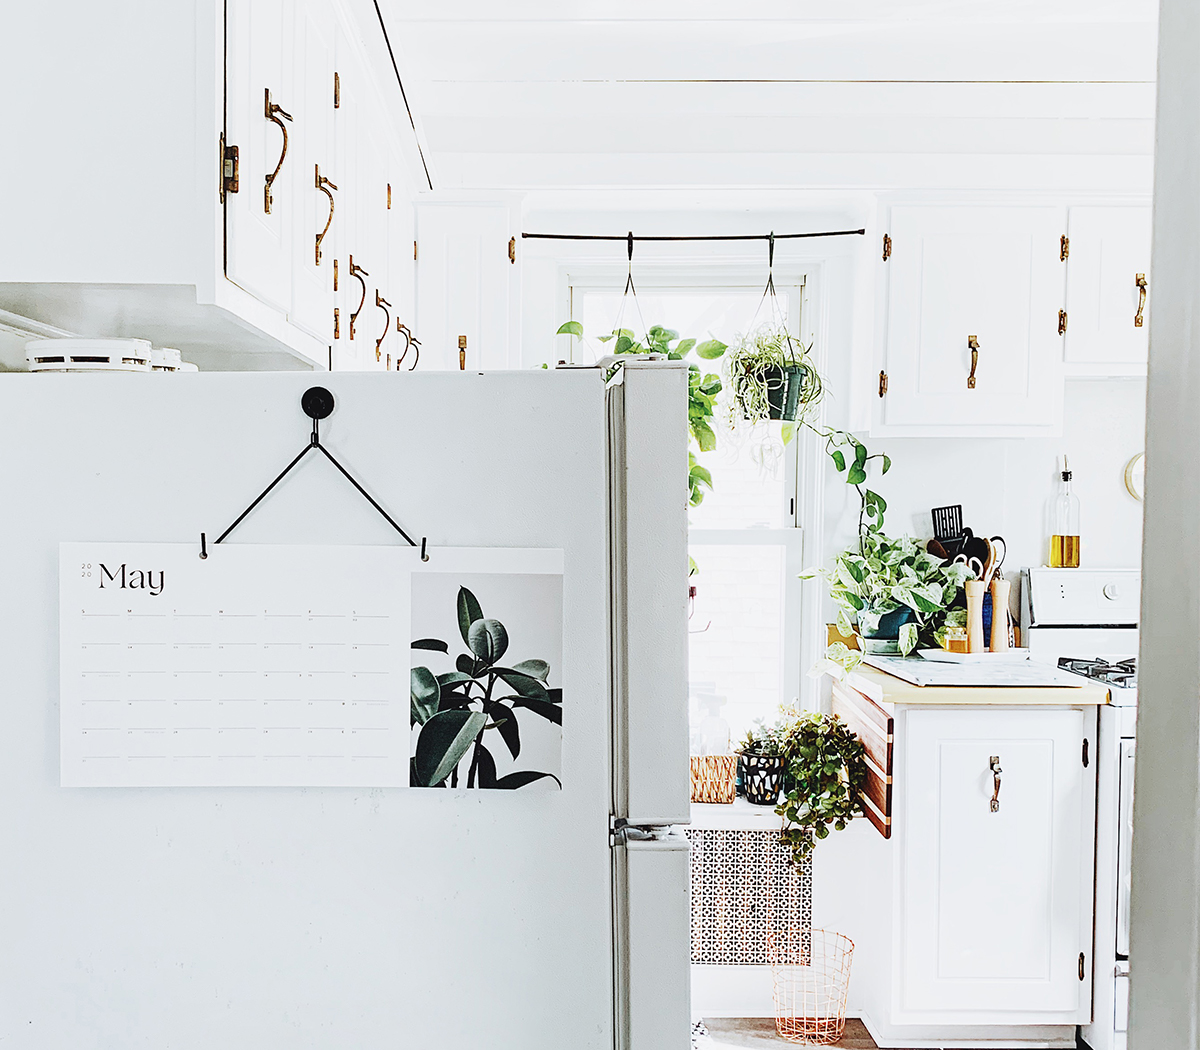 Photo by @kellybananatree of Artifact Uprising Modern Wall Calendar hanging in brightly-lit kitchen